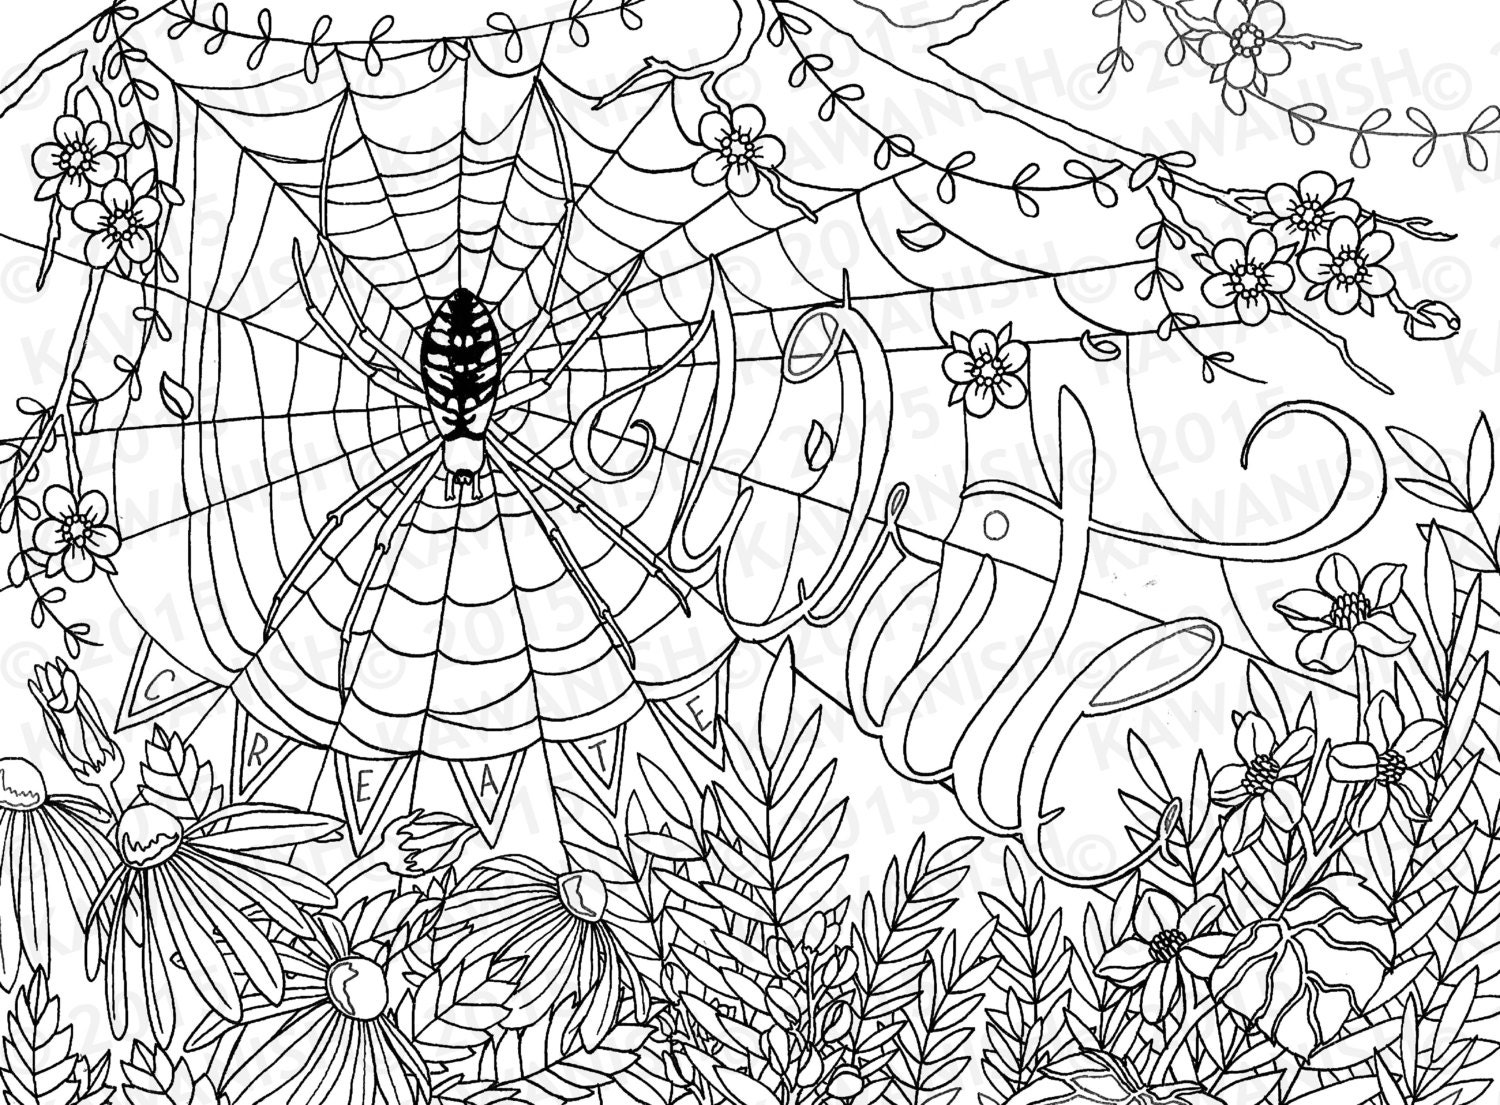 Creative Writing Spider Flower Adult Coloring Page Gift Wall